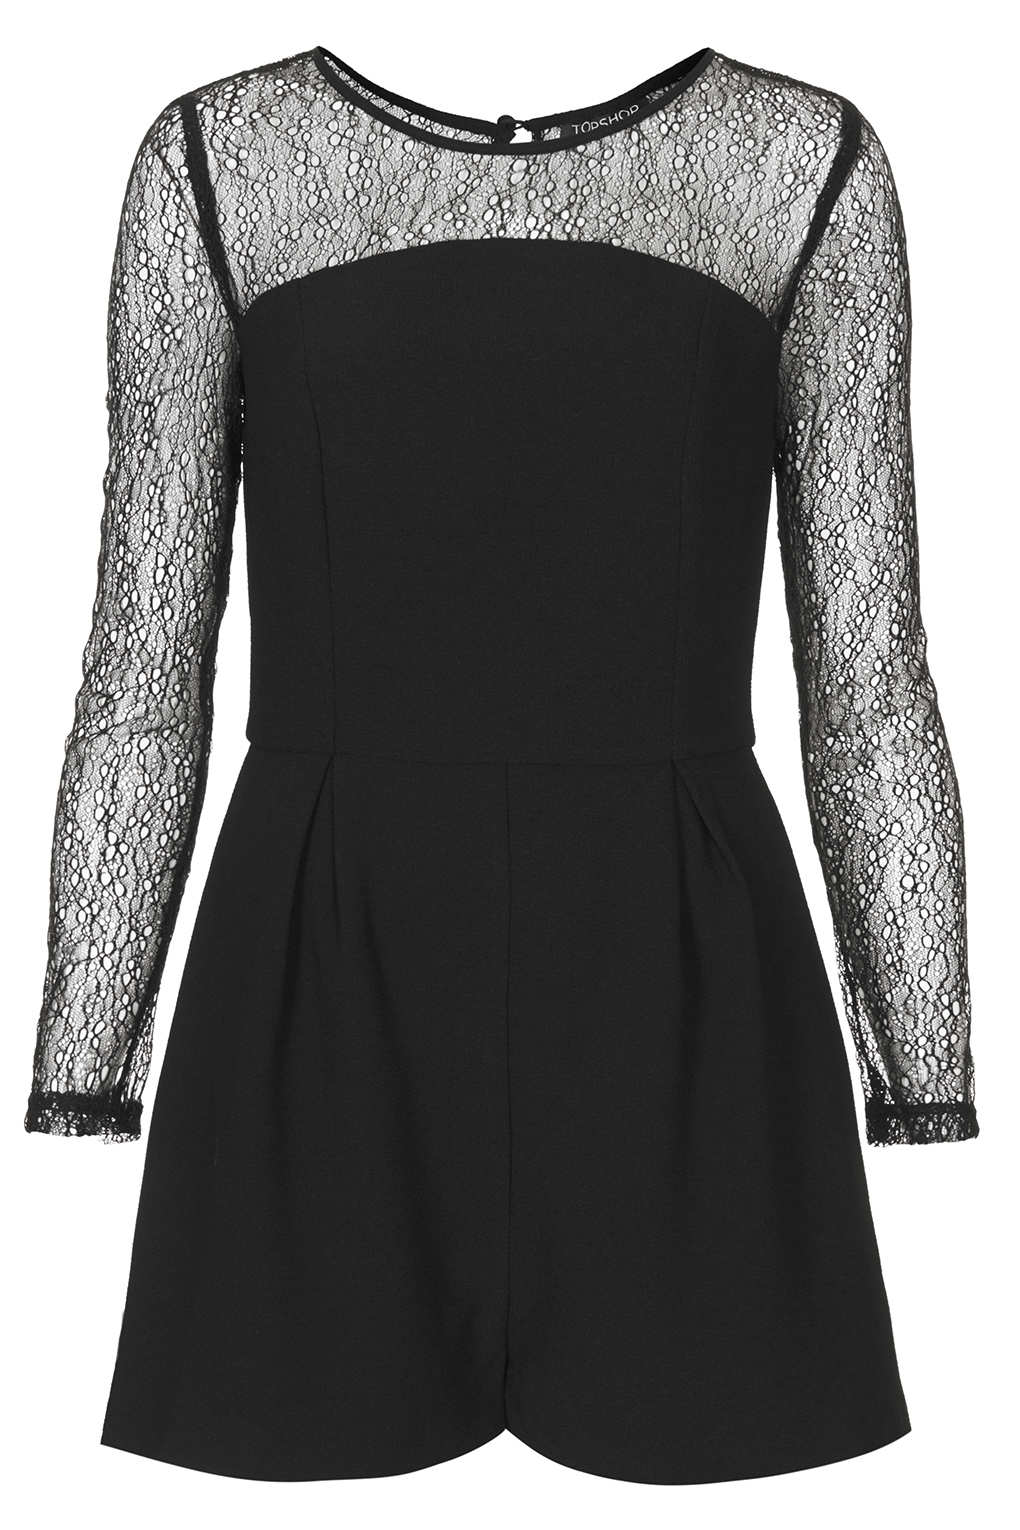 Lyst Topshop Lace Long Sleeve Playsuit In Black